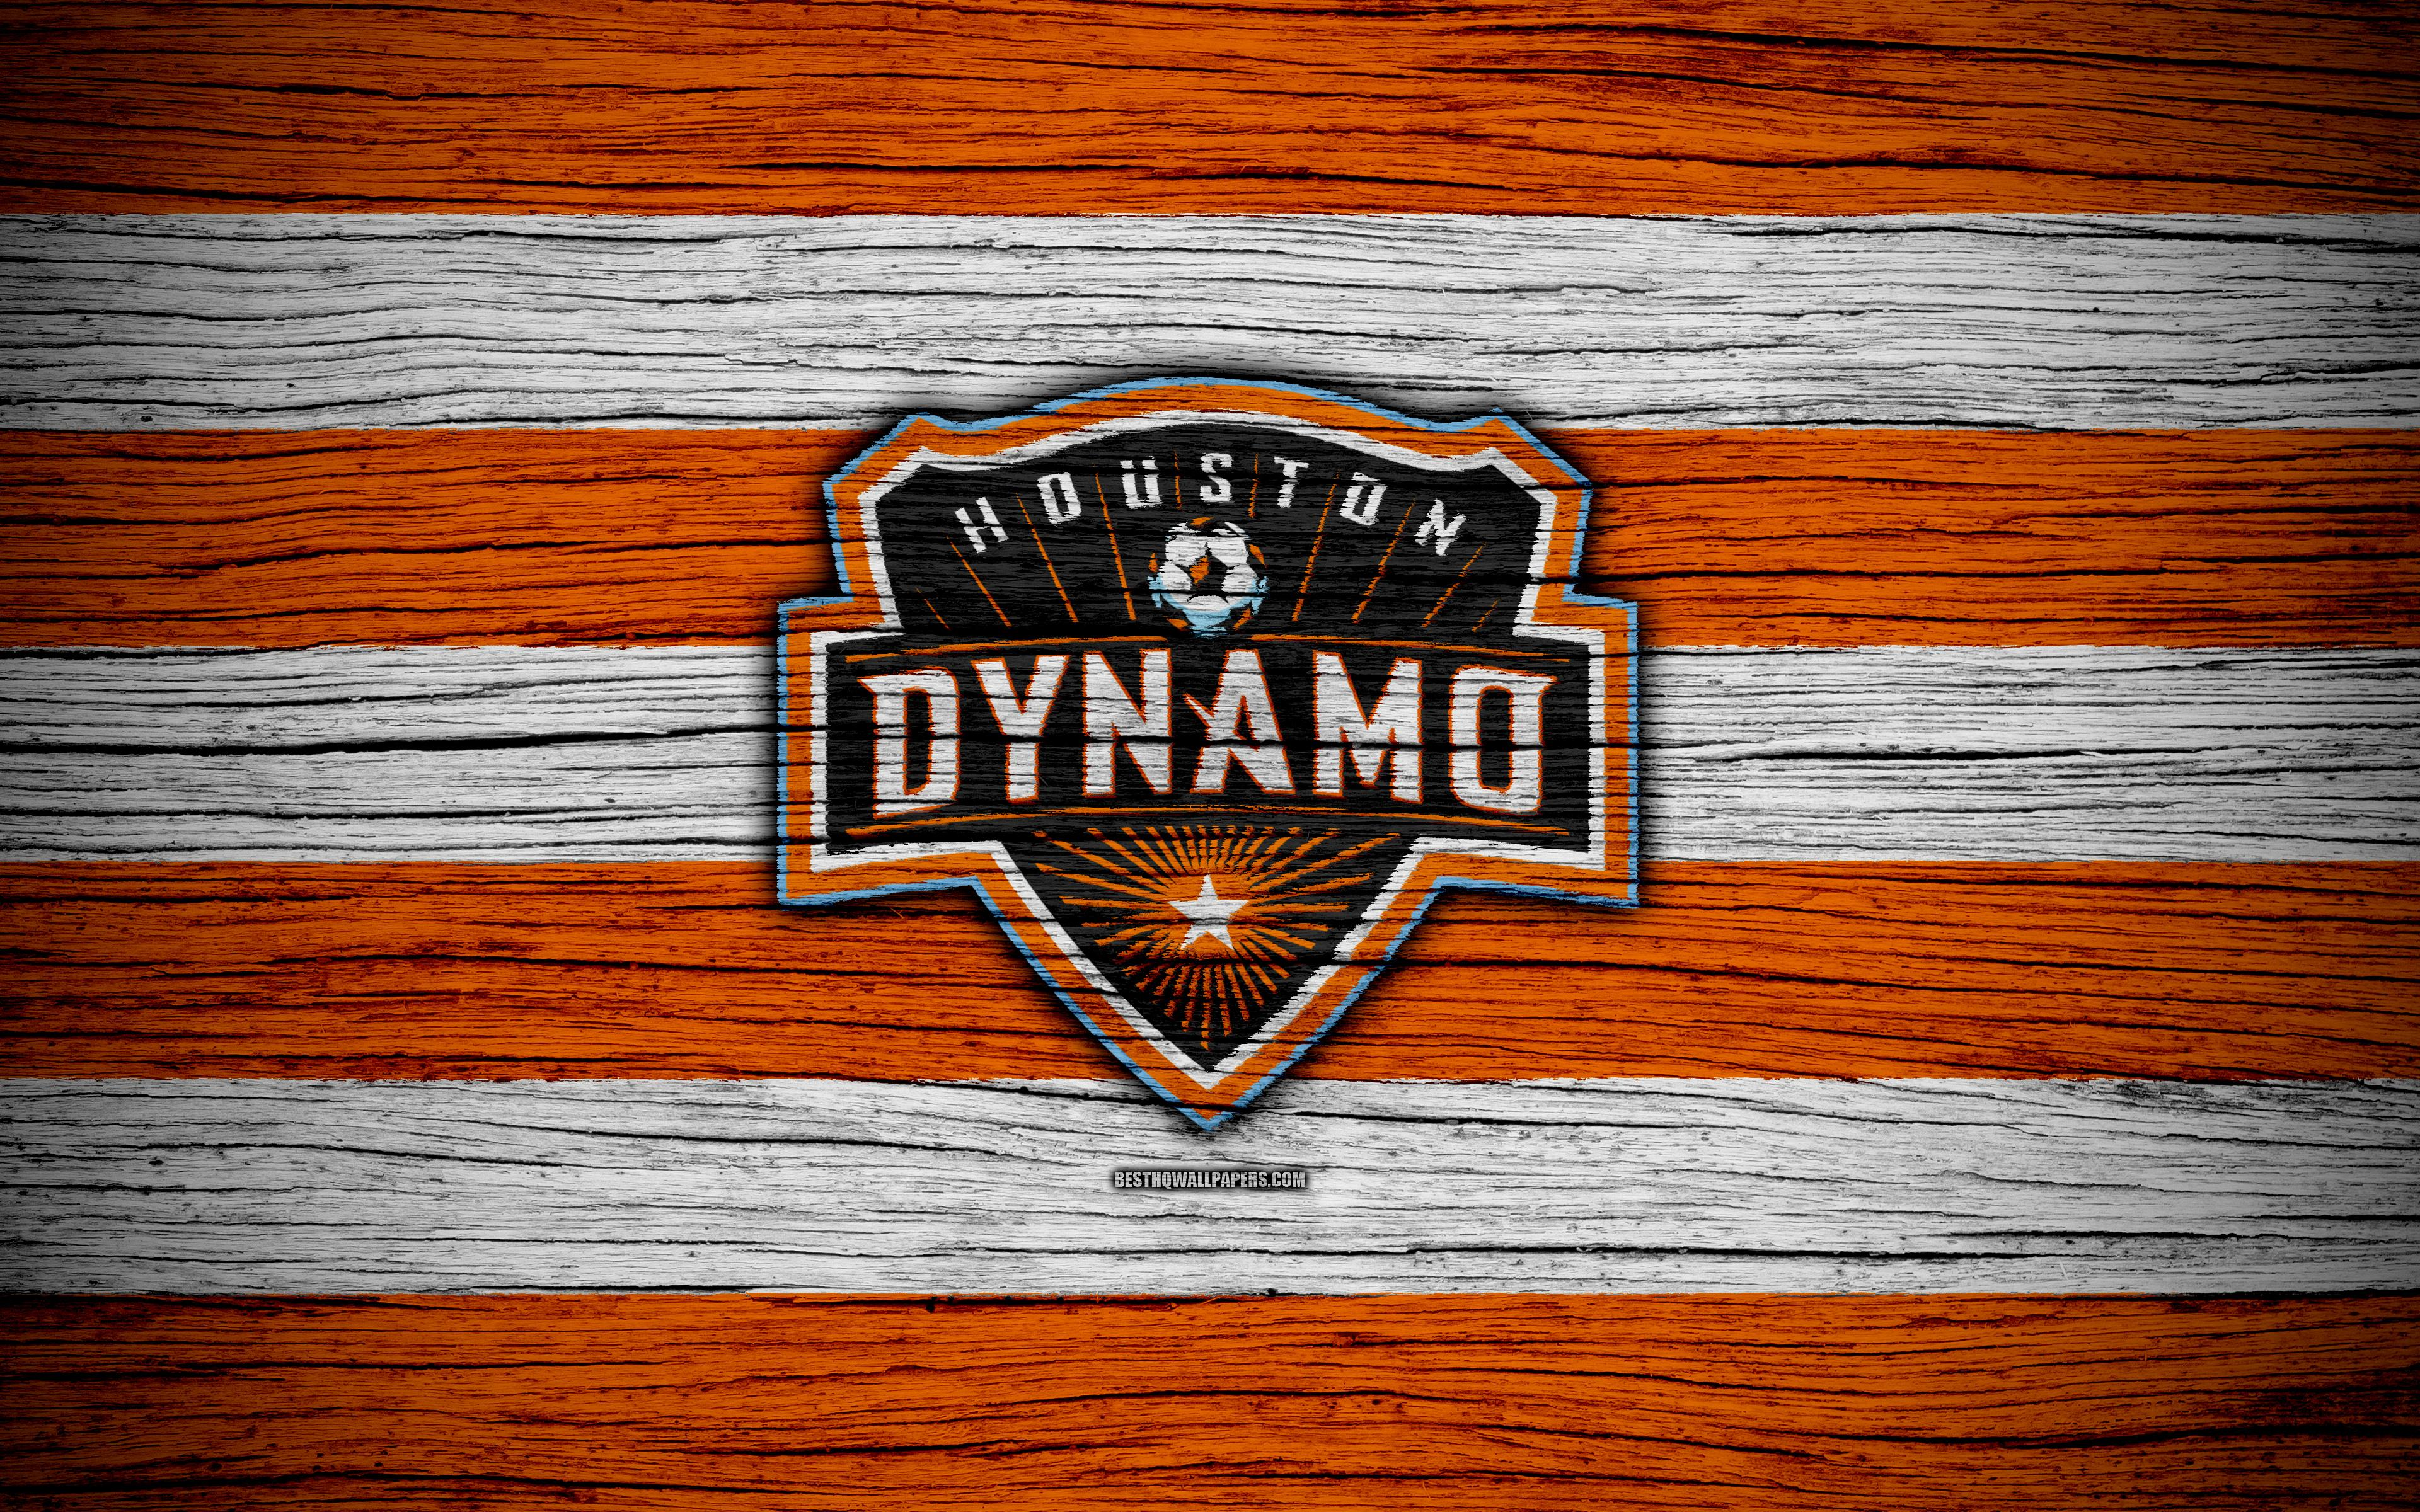 Download wallpapers Houston Dynamo, 4k, MLS, wooden texture, Western